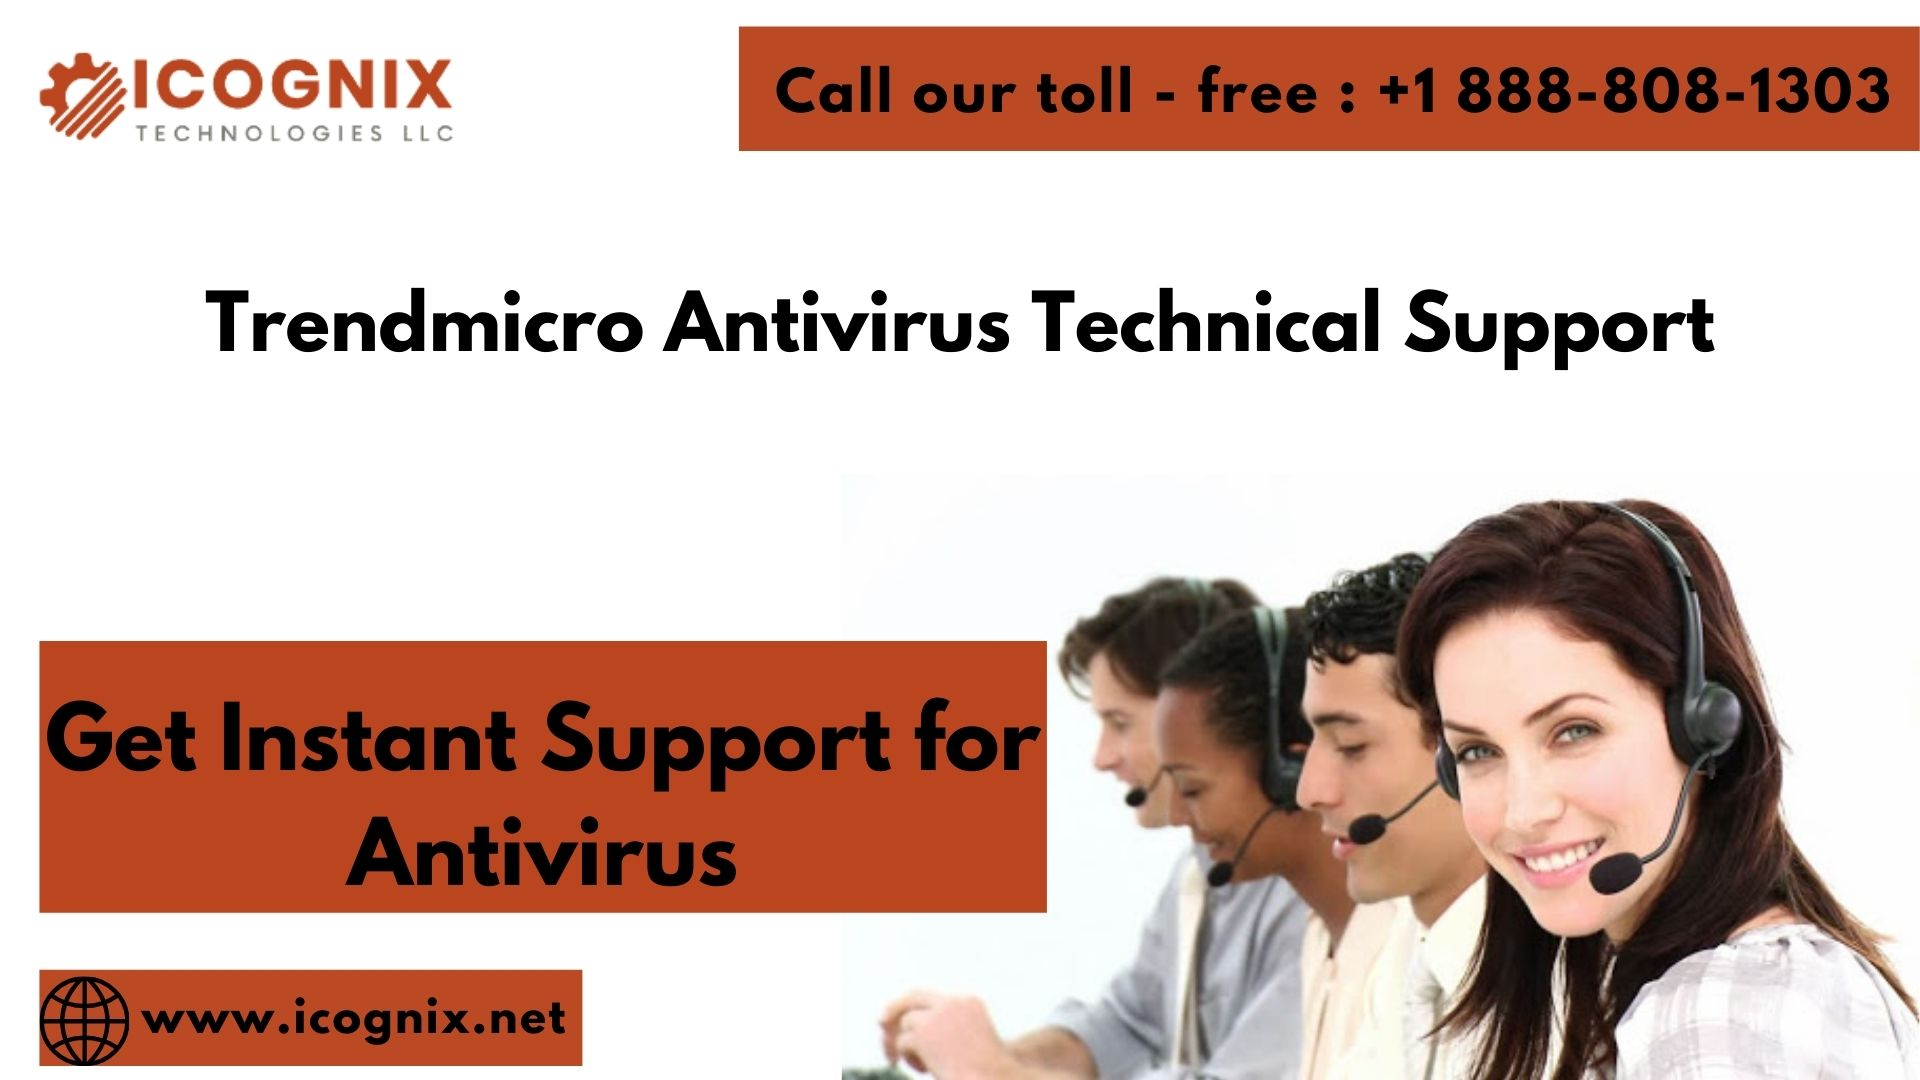 Trendmicro Antivirus Technical Support